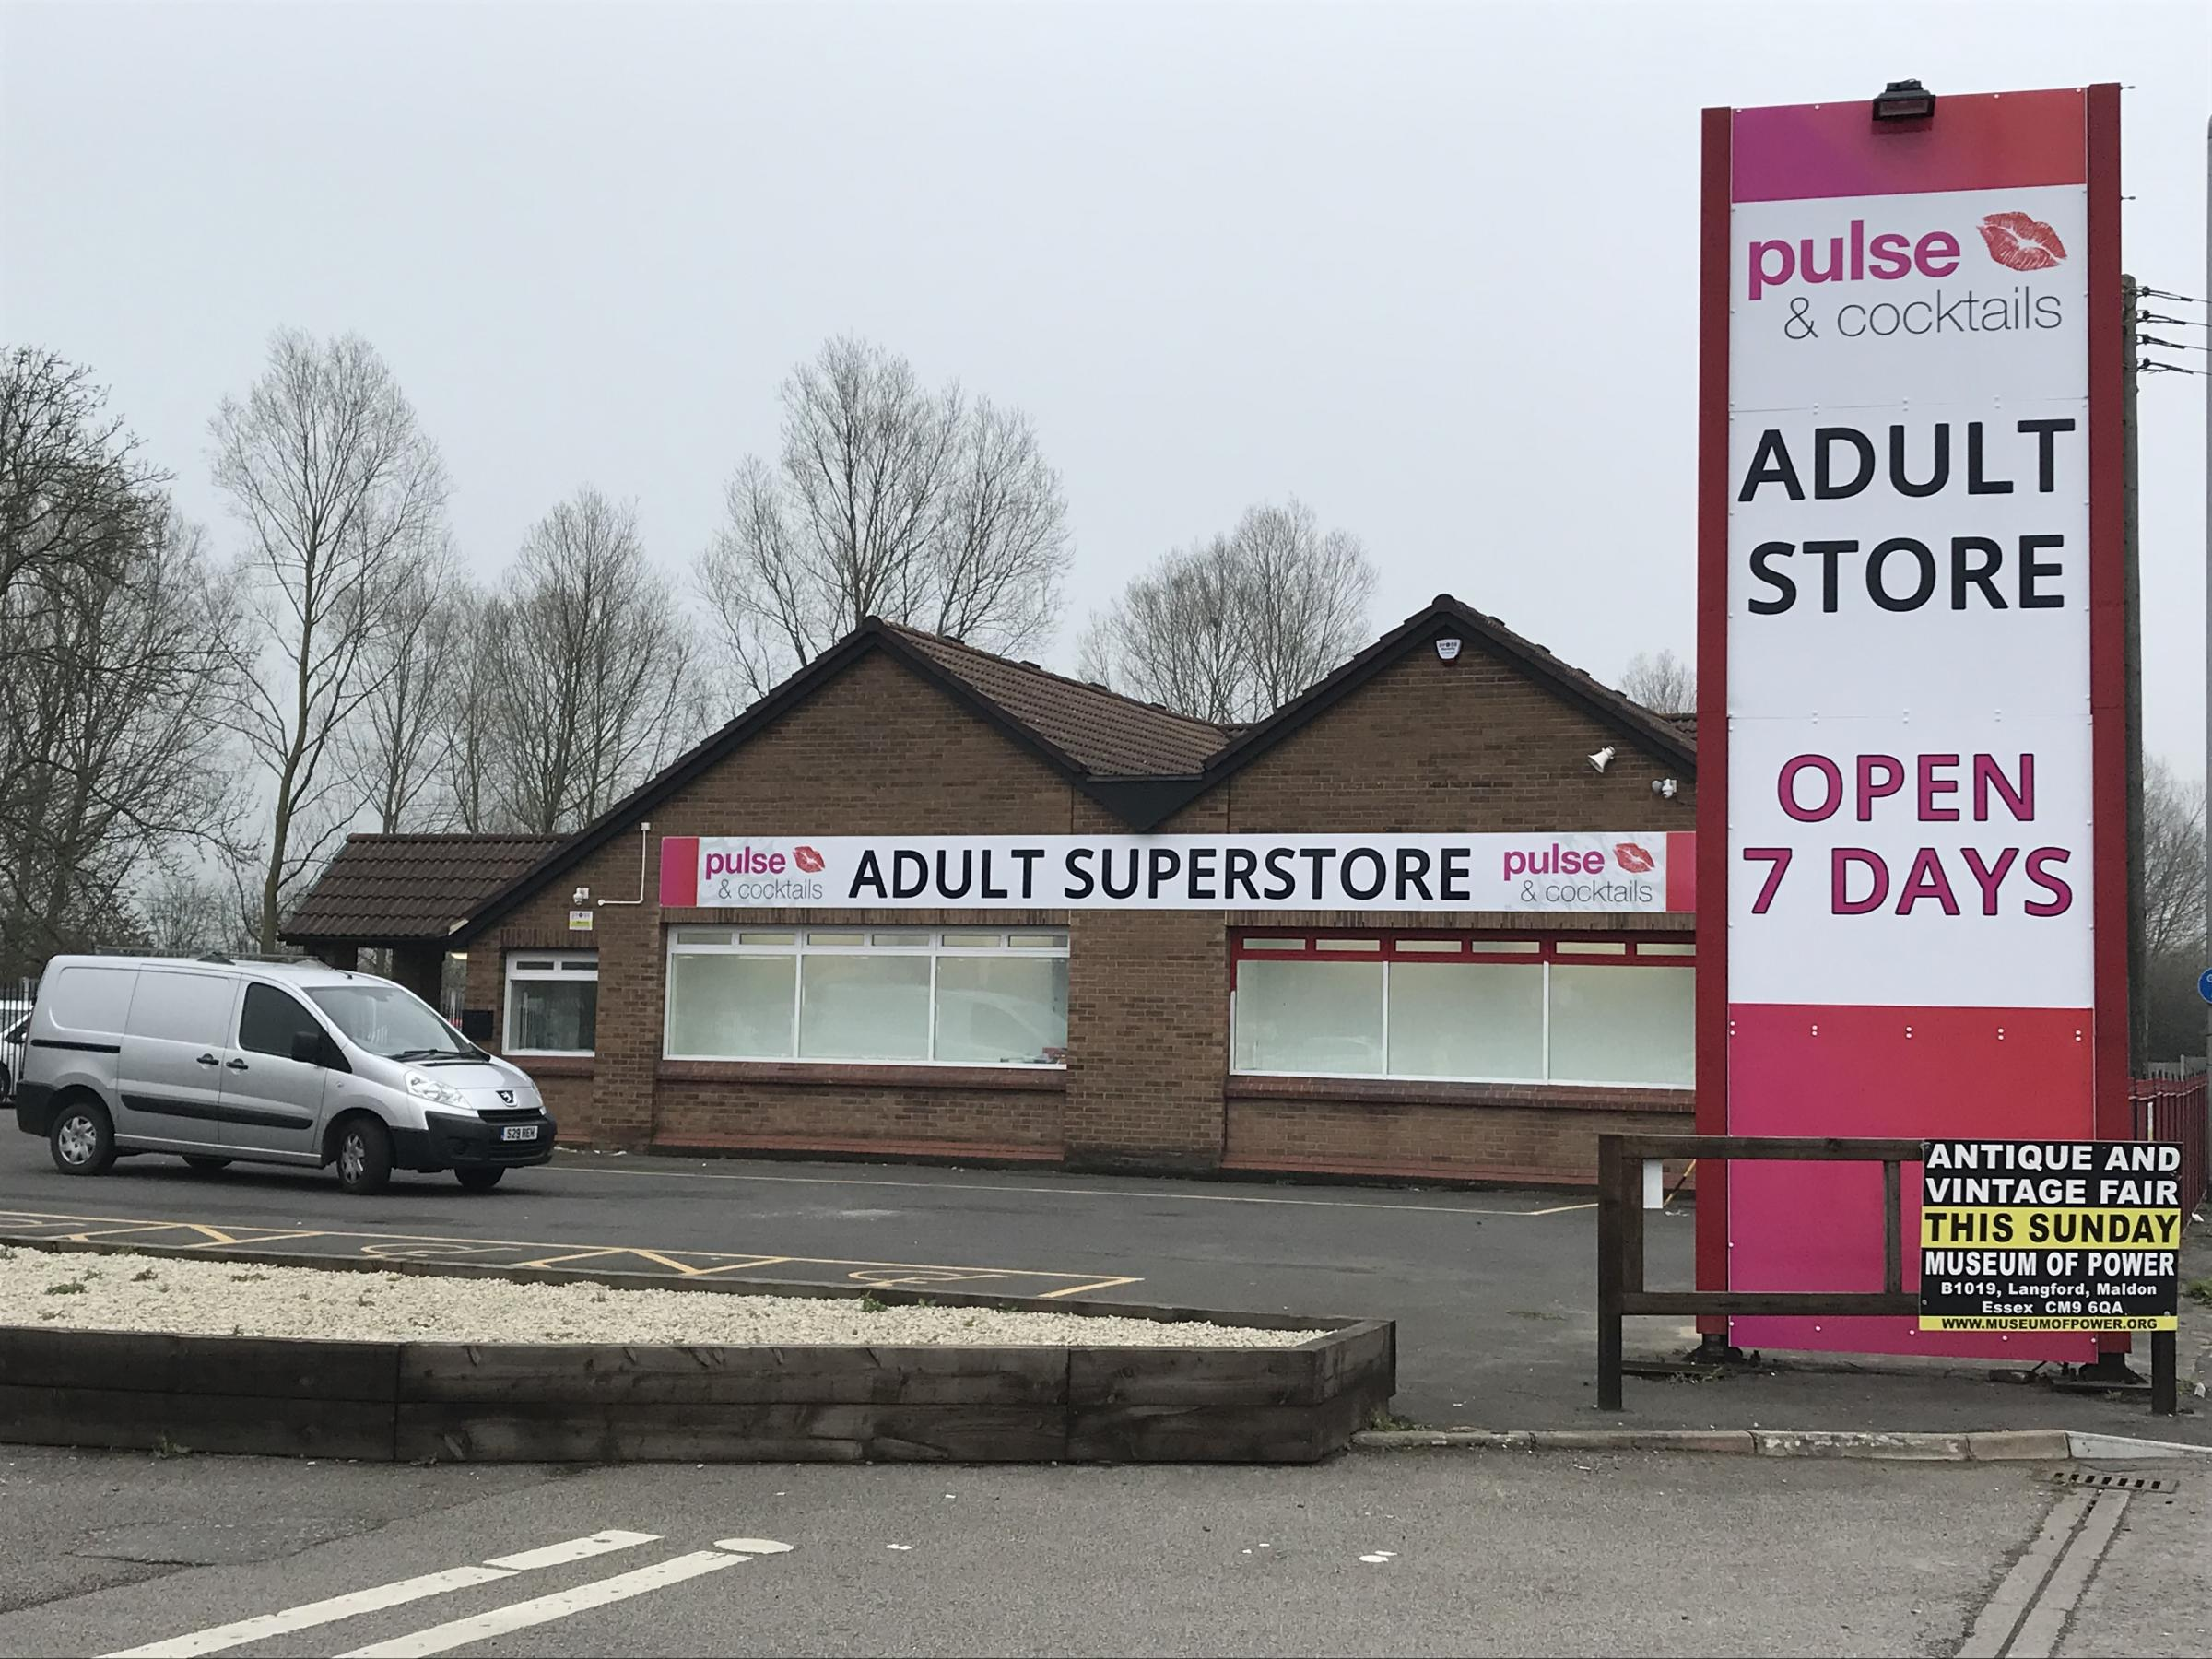 'Sexy superstore' opening off the A12